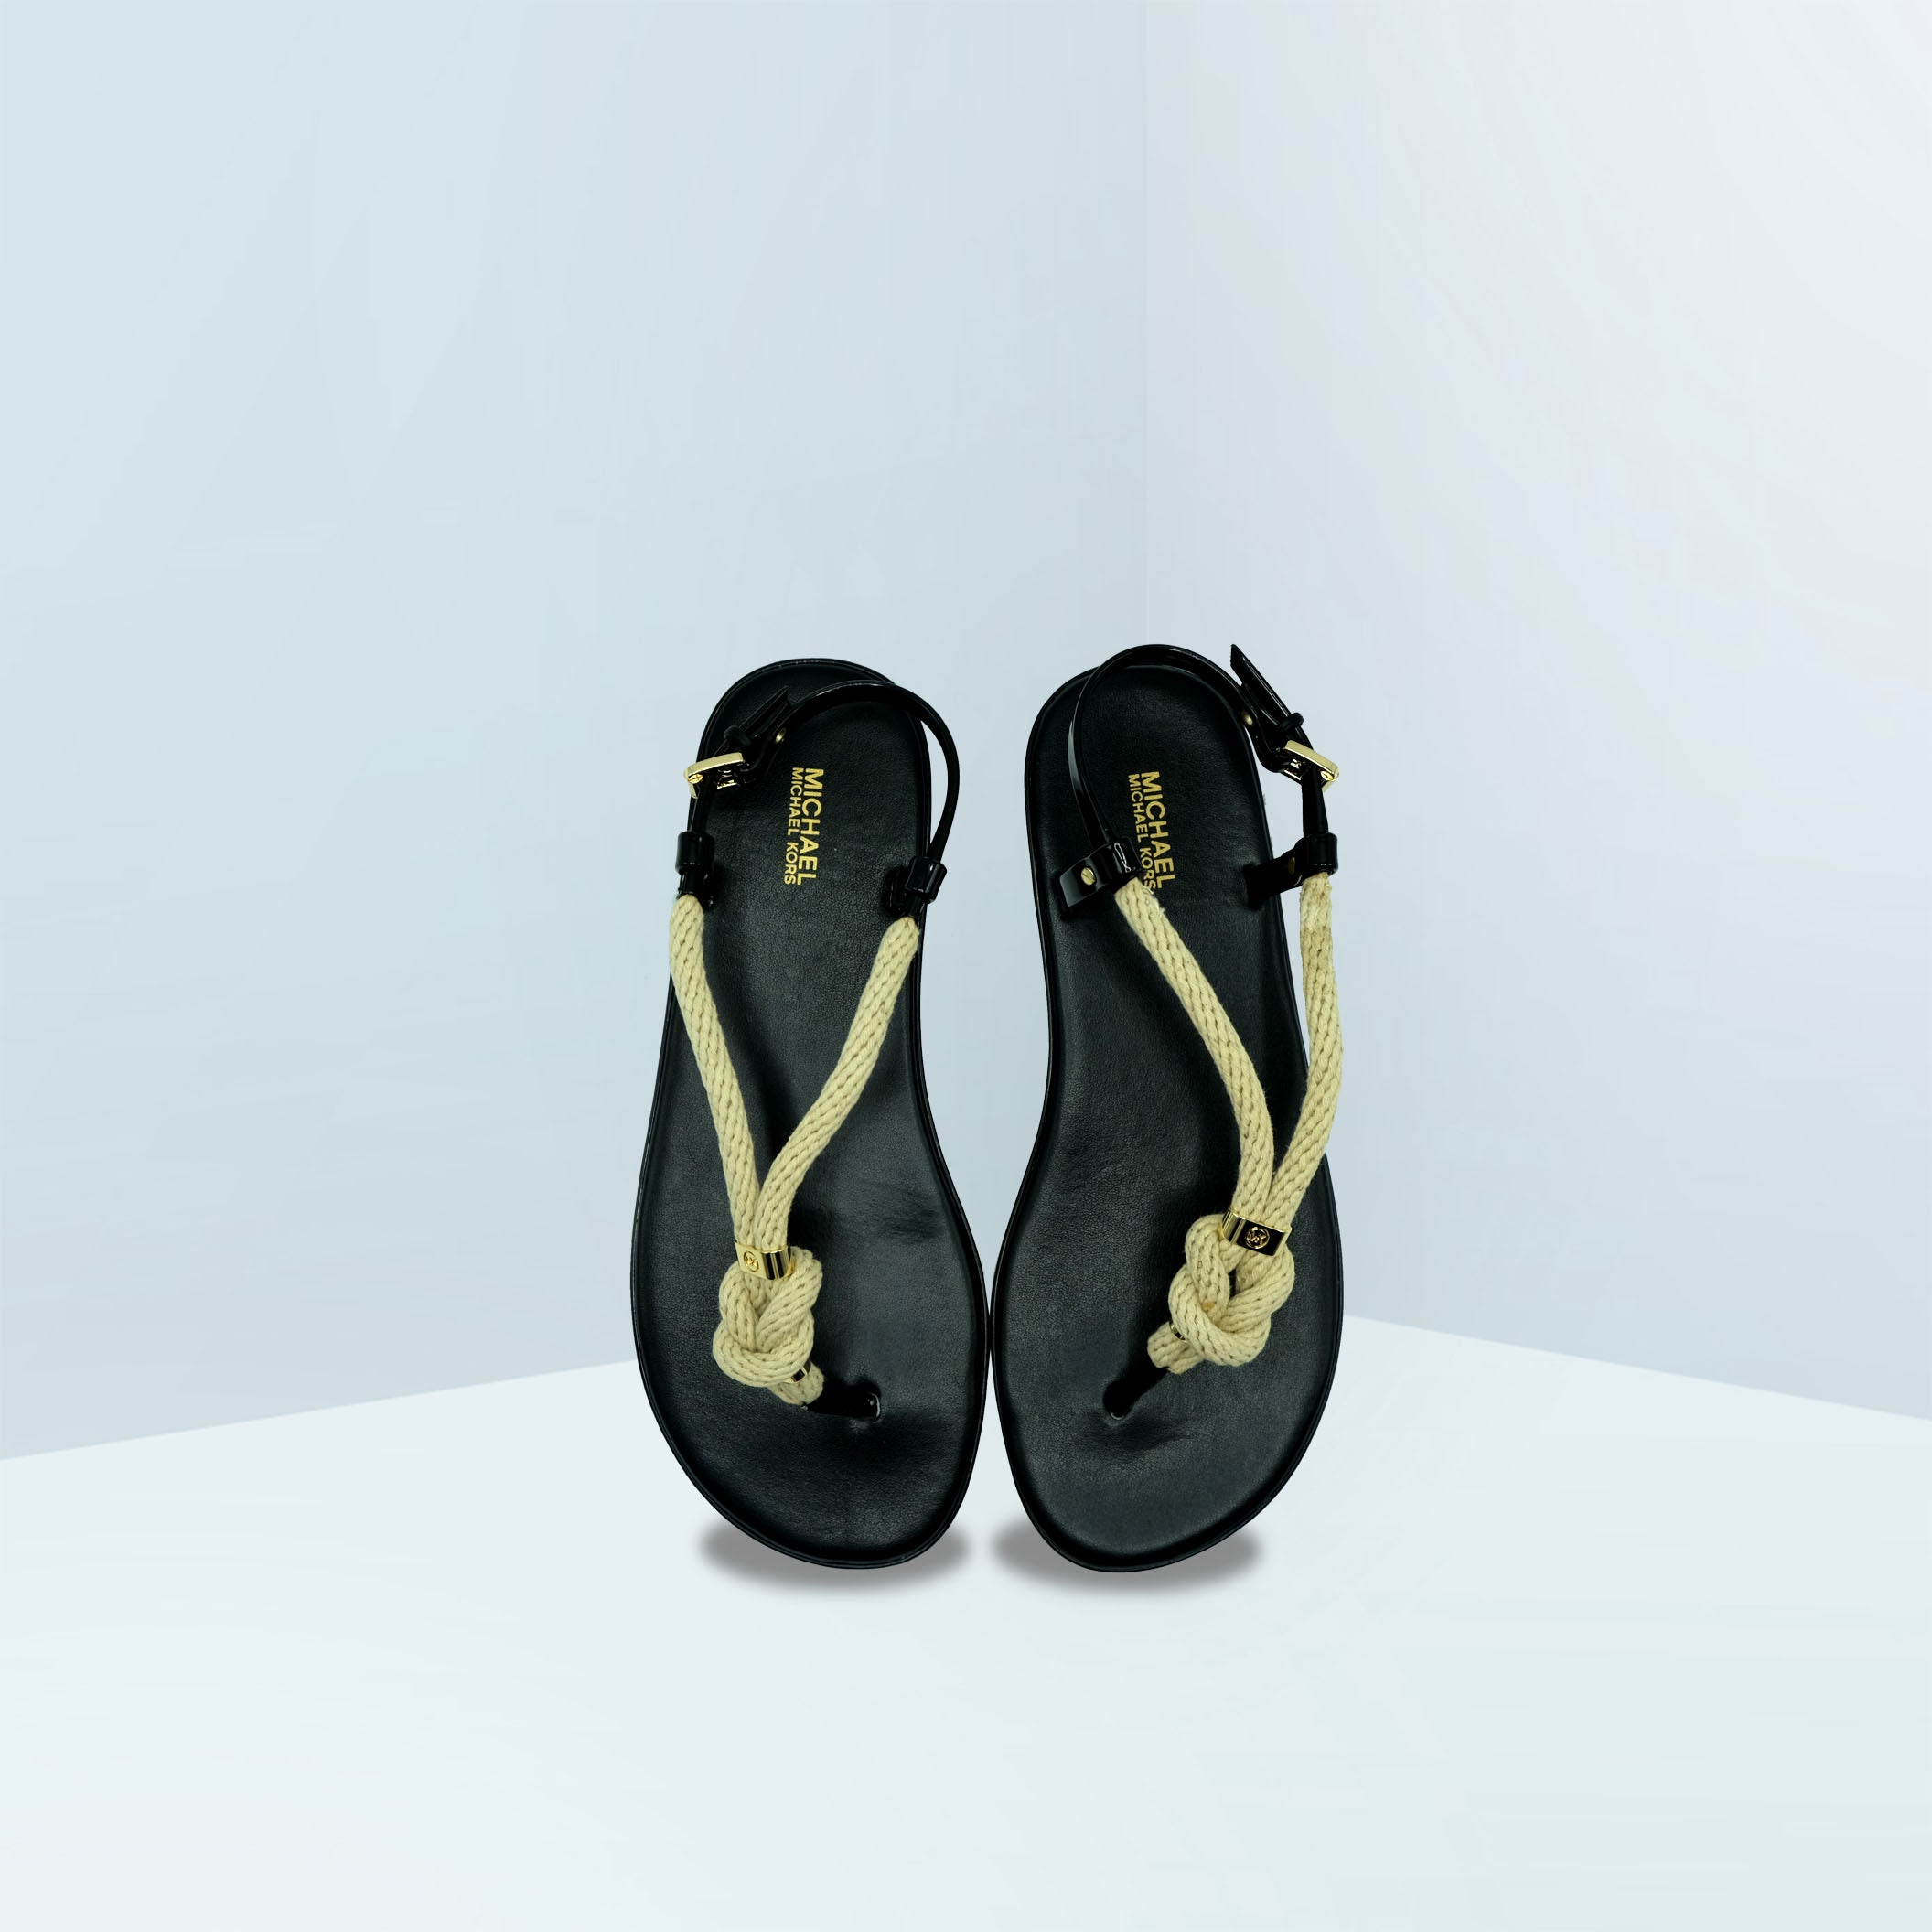 Holly Jelly Rope Sandals